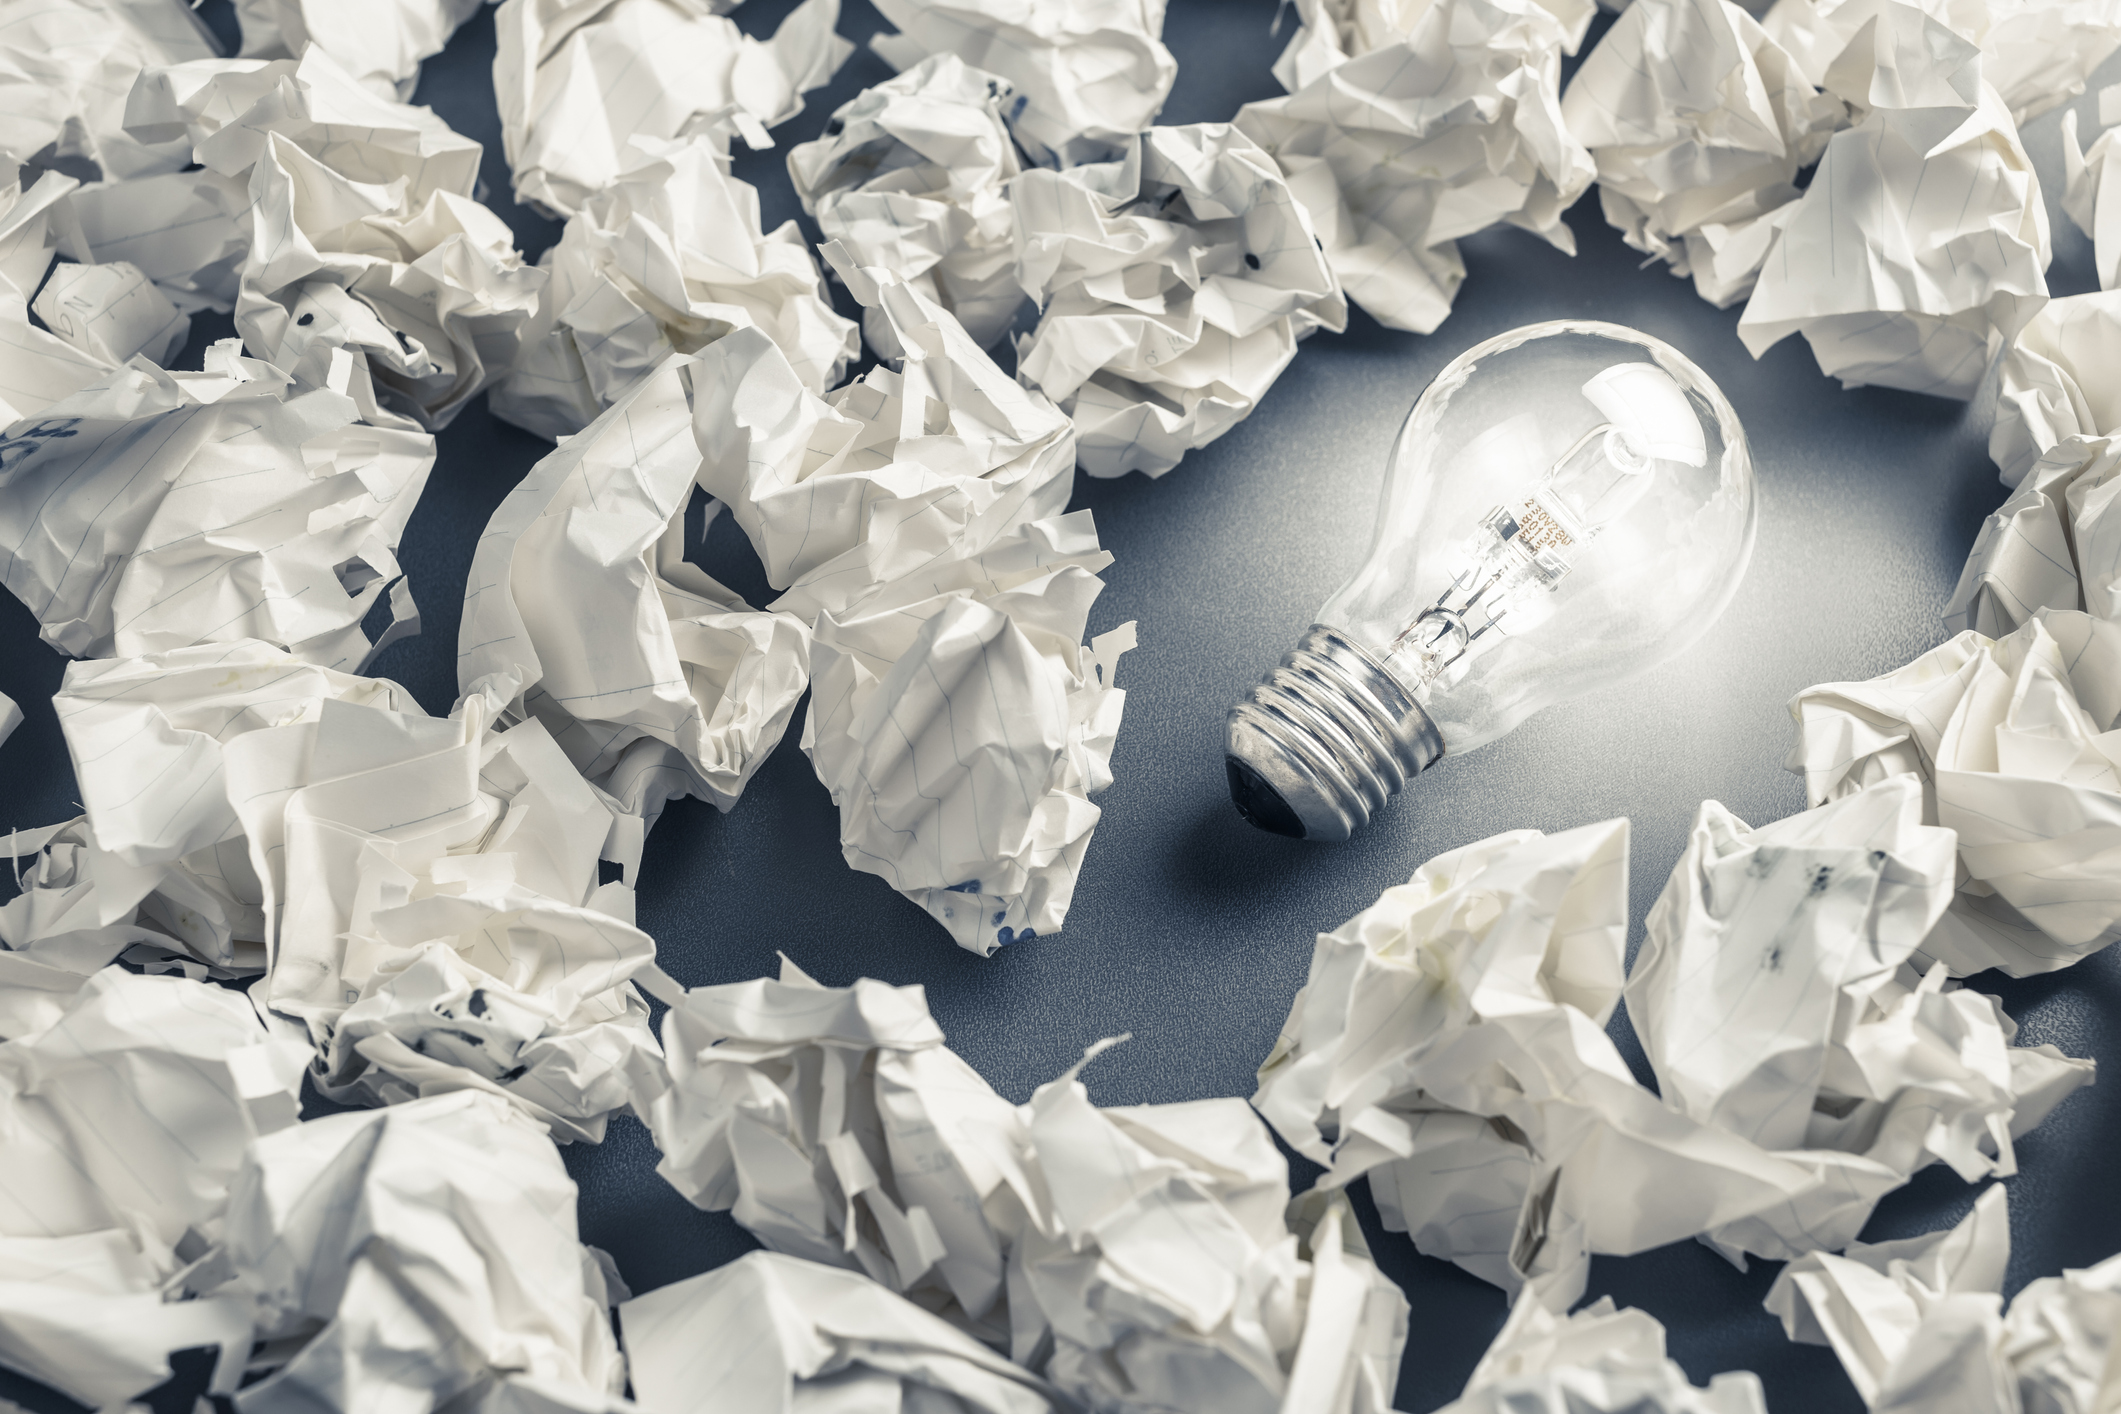 Glowing light bulb among the crumpled rubbish paper